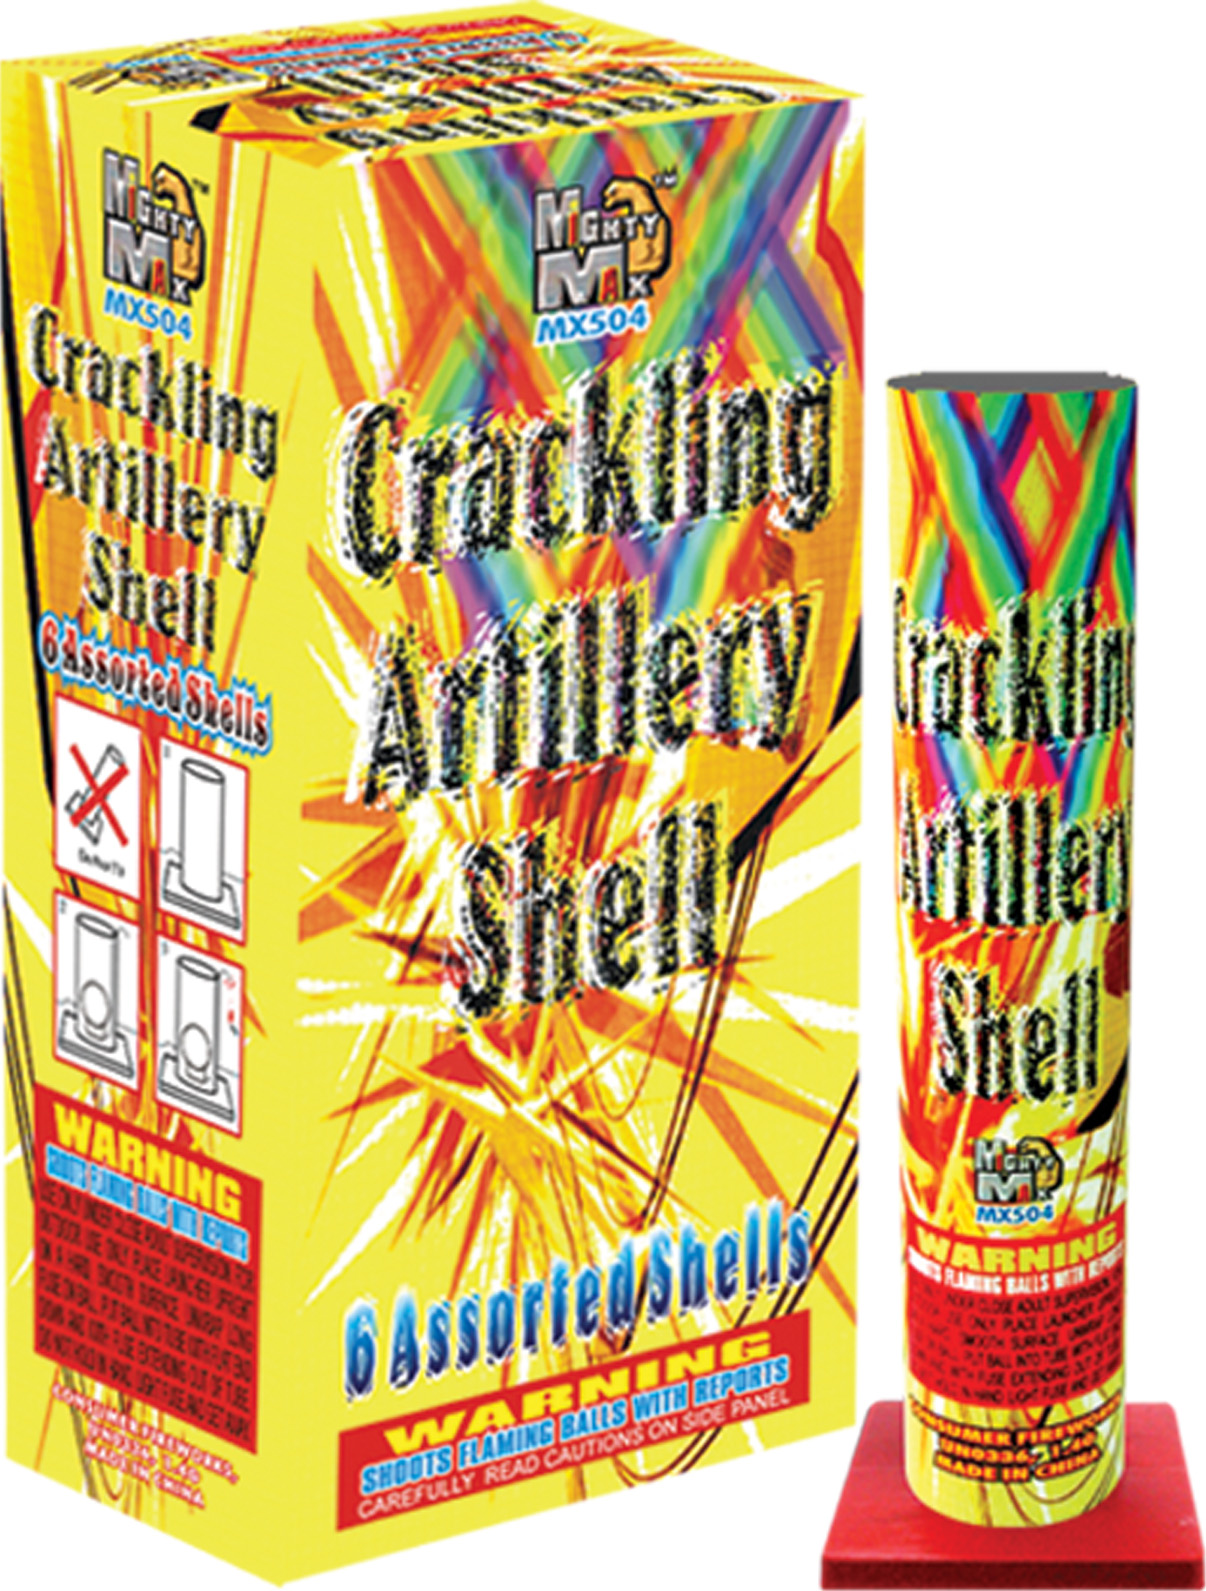 MX504 Crackling Artillery Shells copy